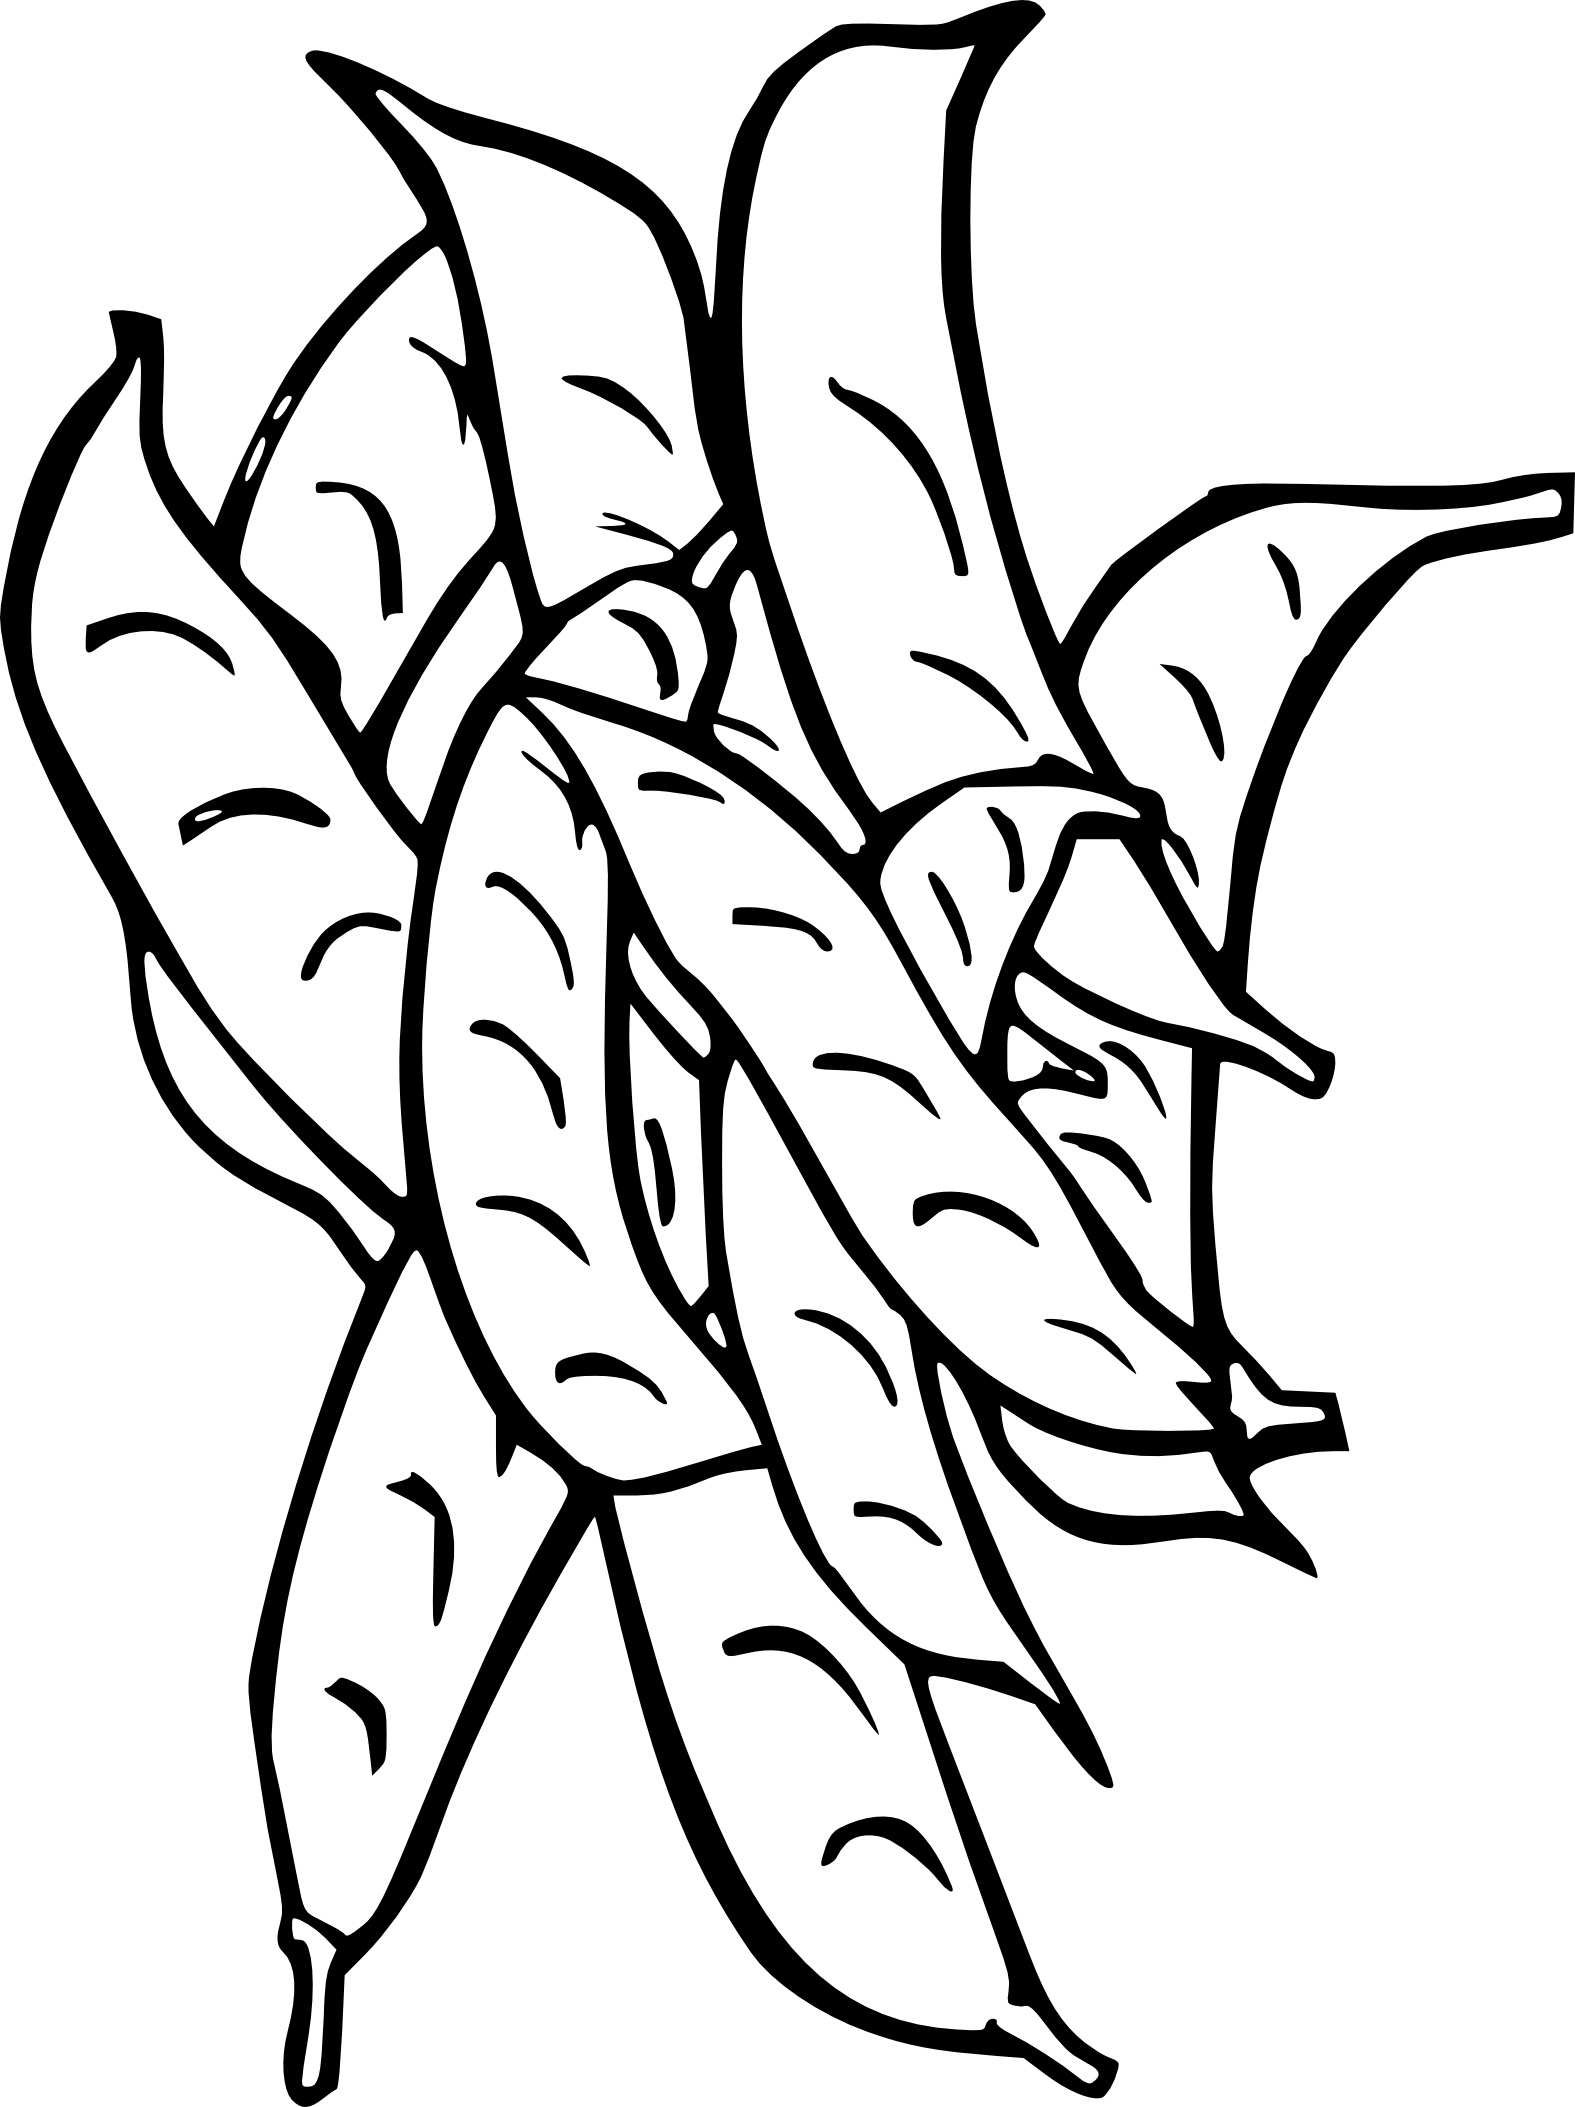 Haricot Vert additionally Hey Arnold moreover Stock Illustration Ballerina Coloring Page Useful As Book Kids Image50763368 moreover How To Draw Ruler additionally 522. on disney coloring pages clip art